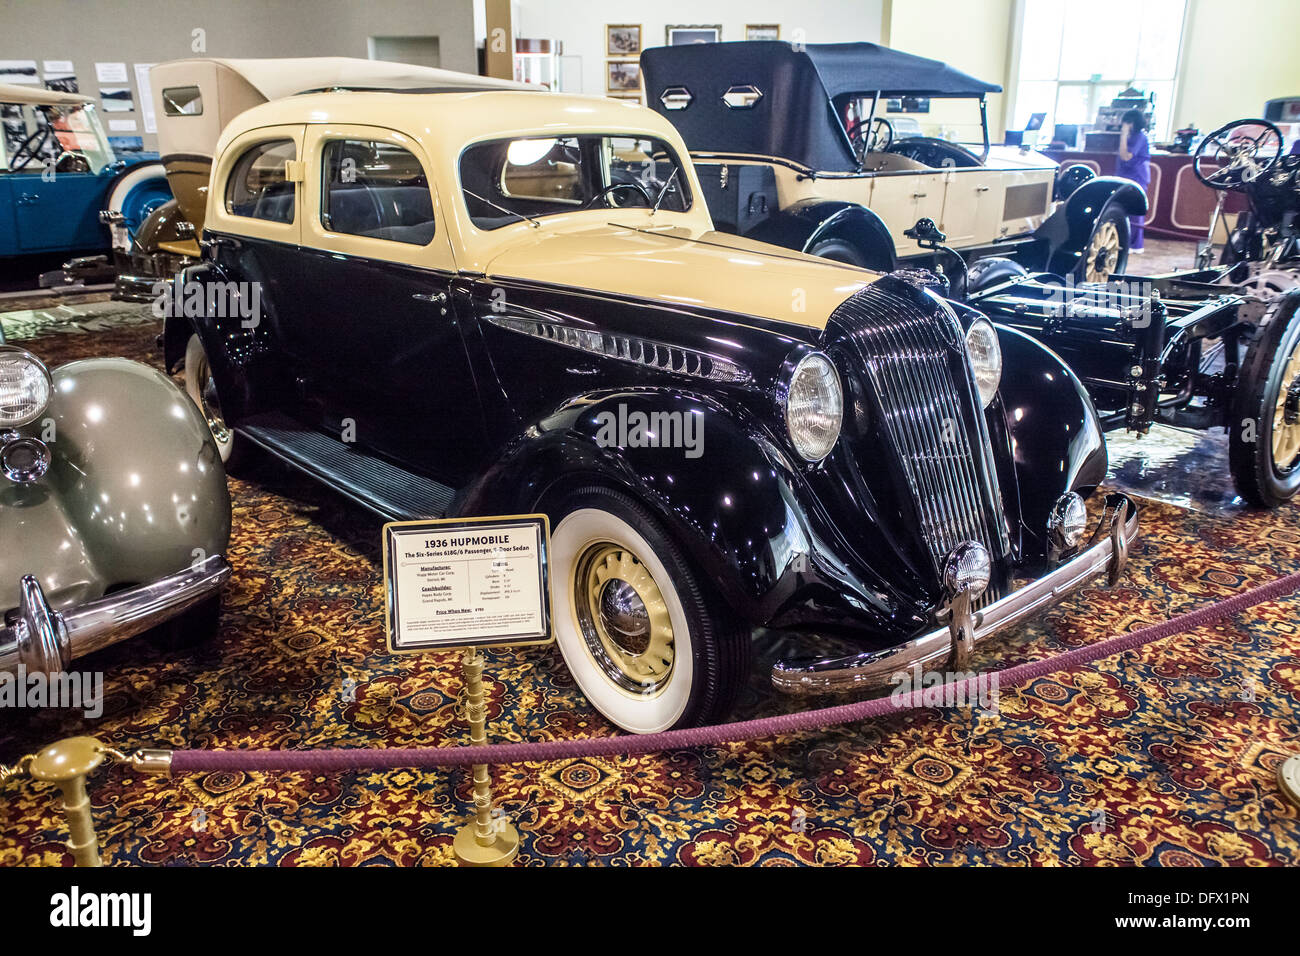 A Hupmobile The Six Series Passenger Door Sedan At